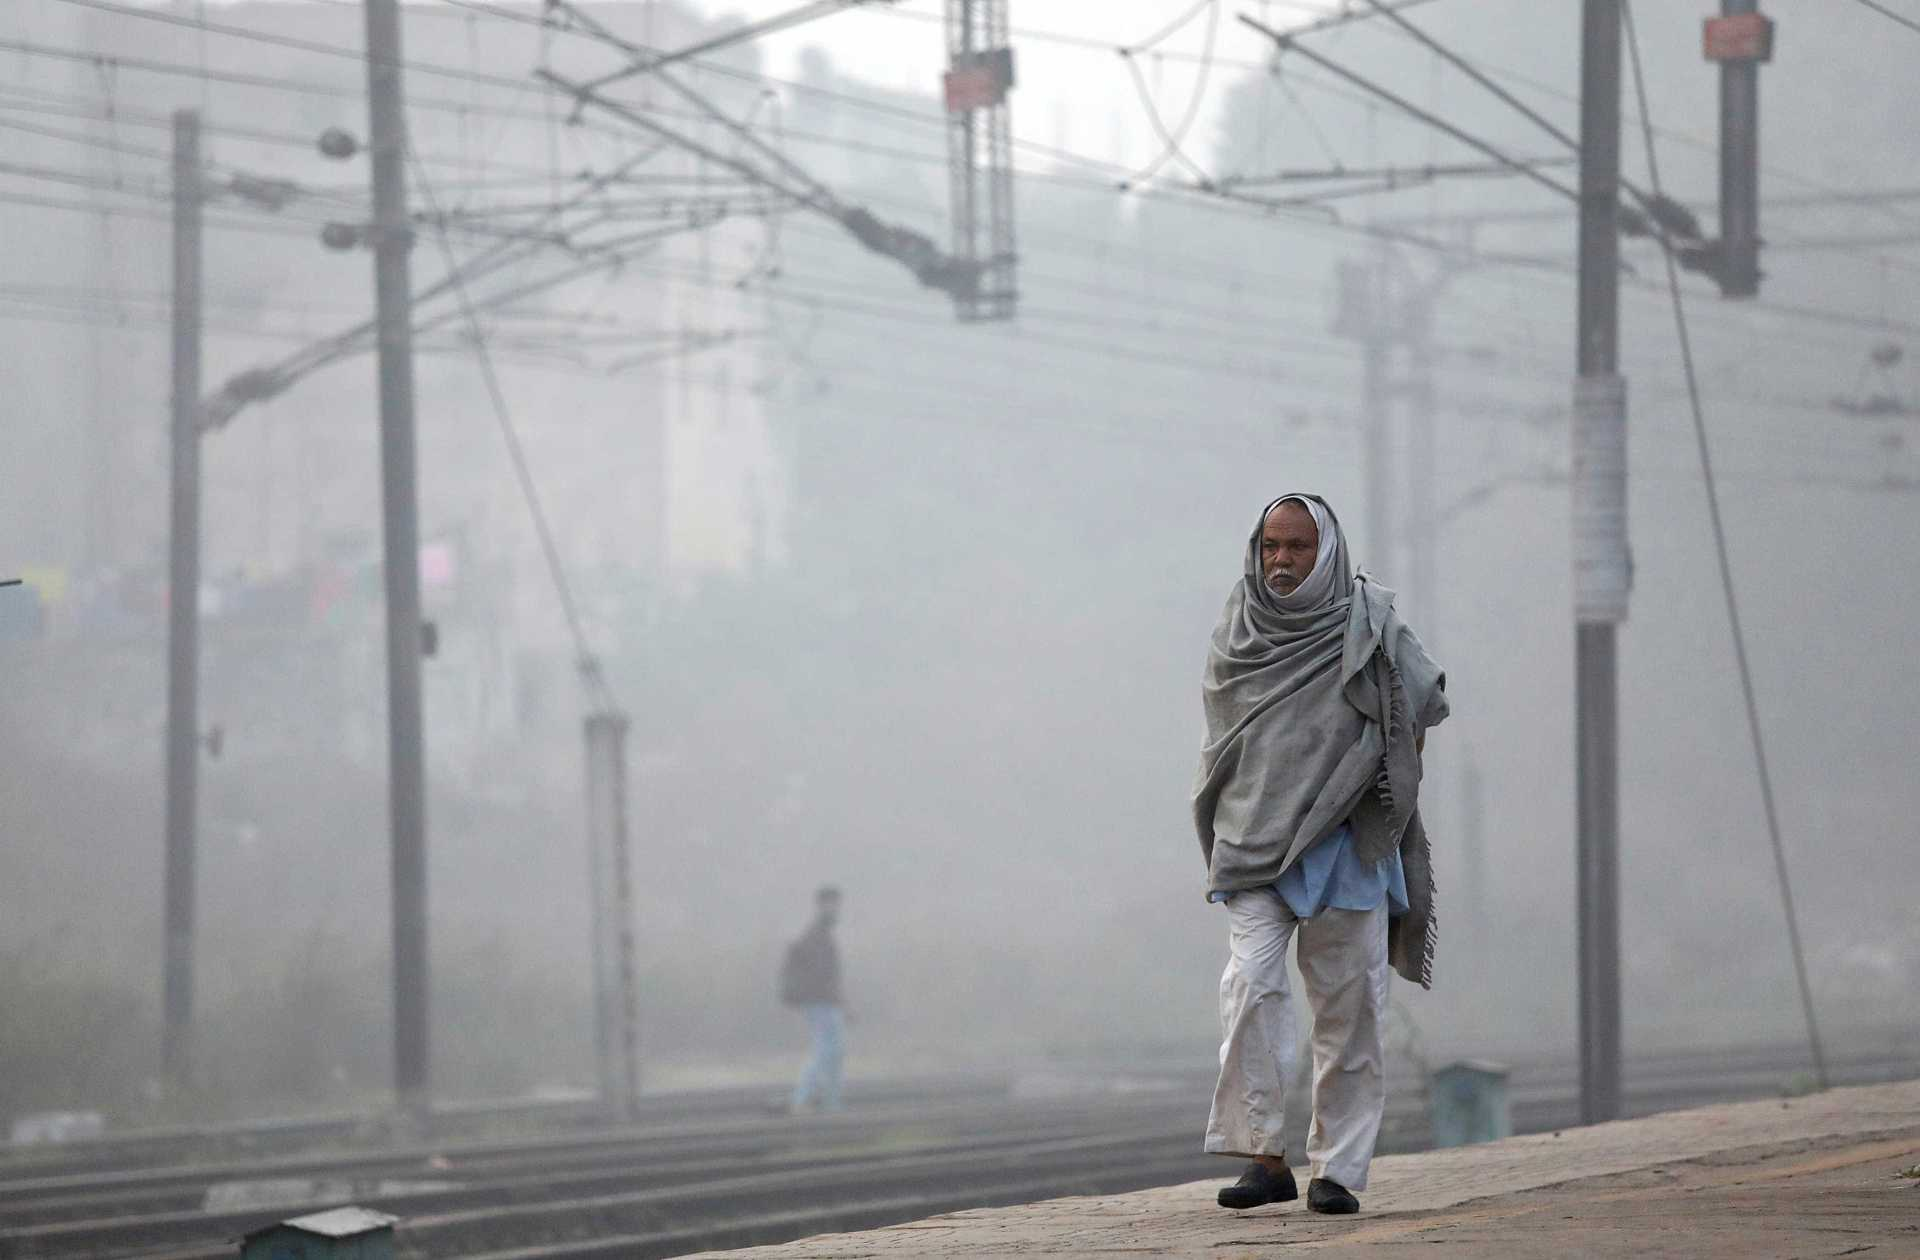 A man walks along a railway platform on a smoggy morning in New Delhi, India, November 10, 2017. REUTERS/Saumya Khandelwal